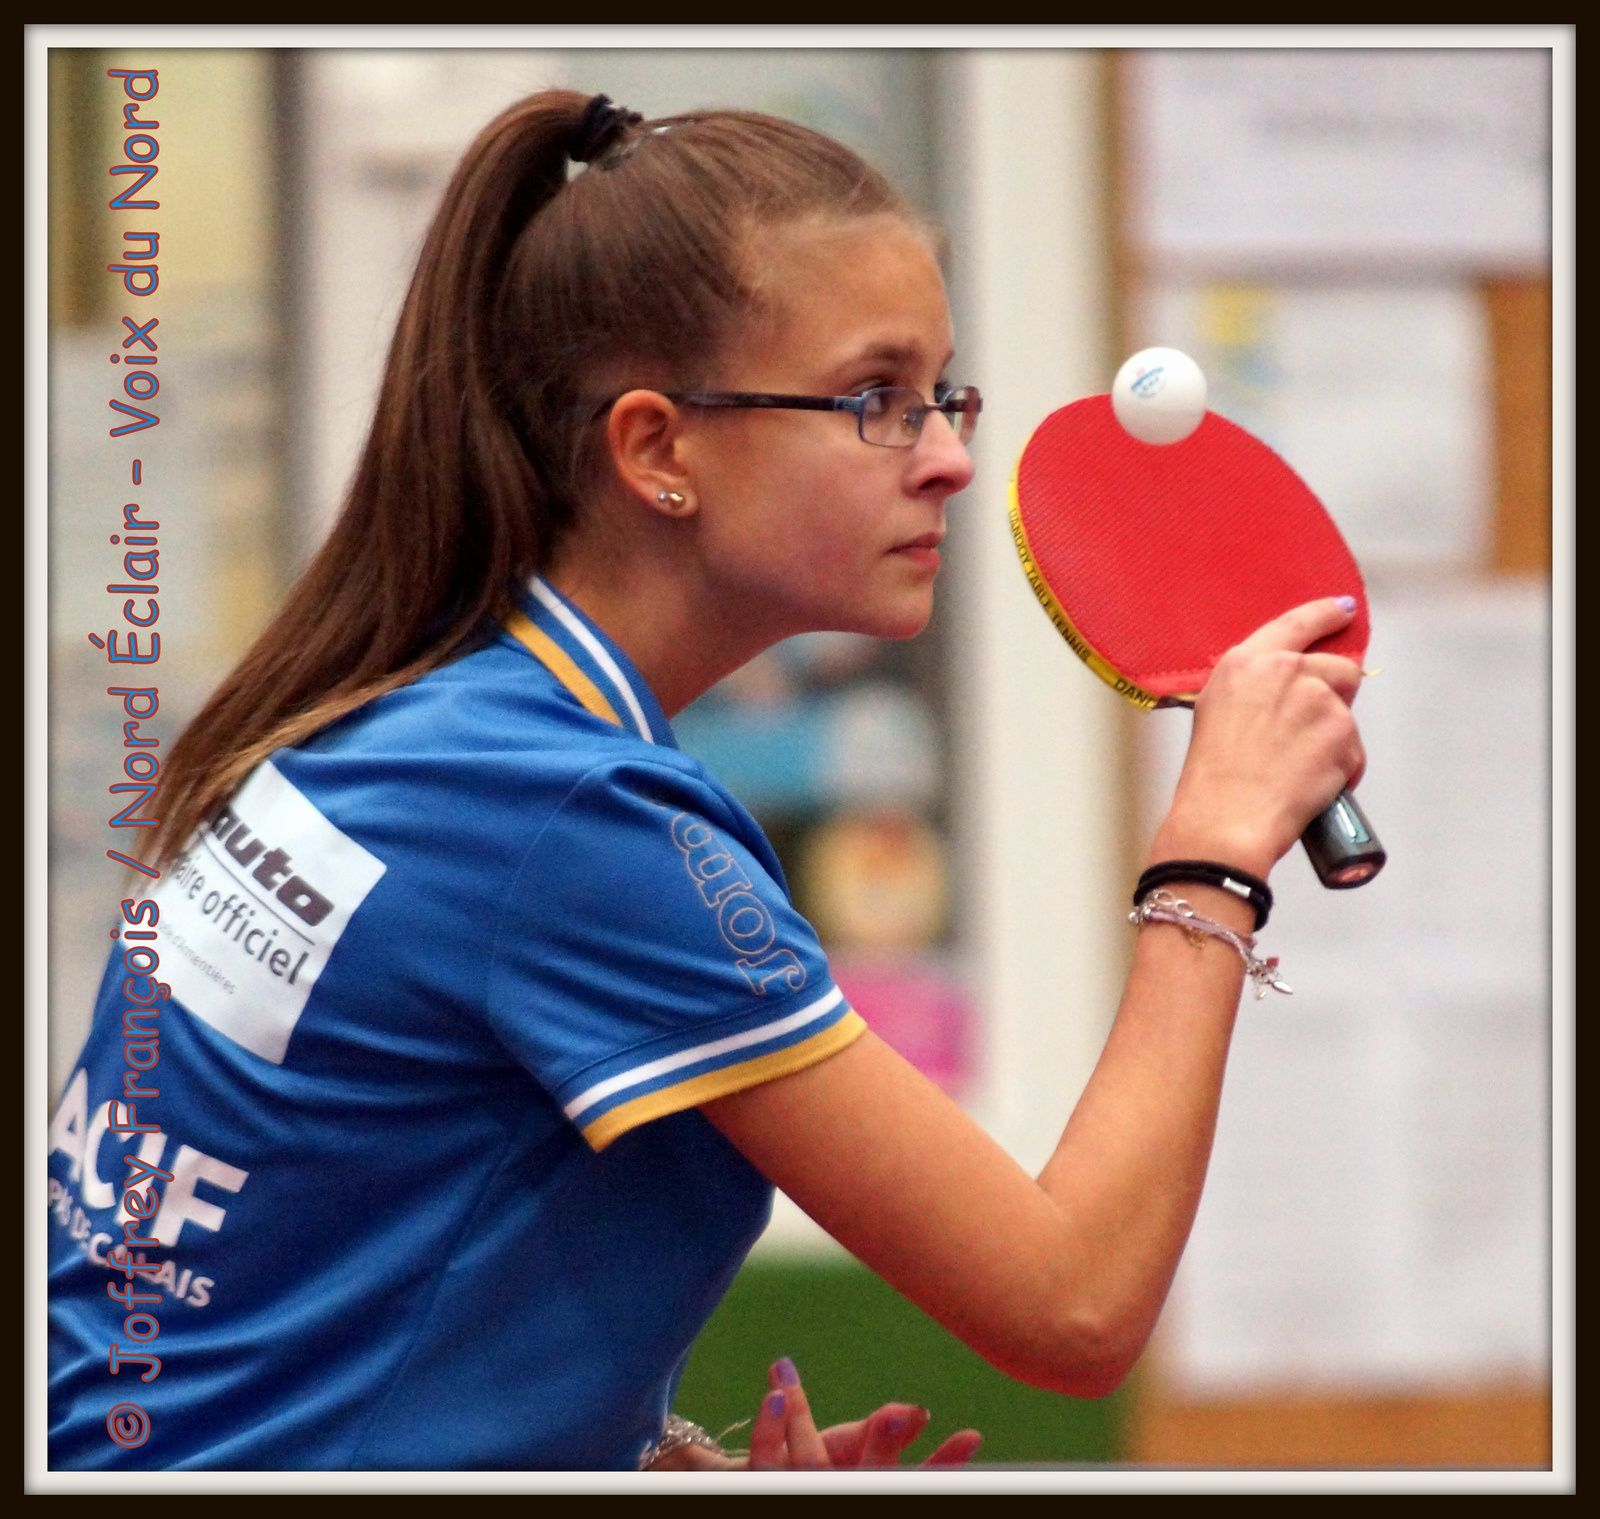 17.10.15 Ping ULJAP - Coutances